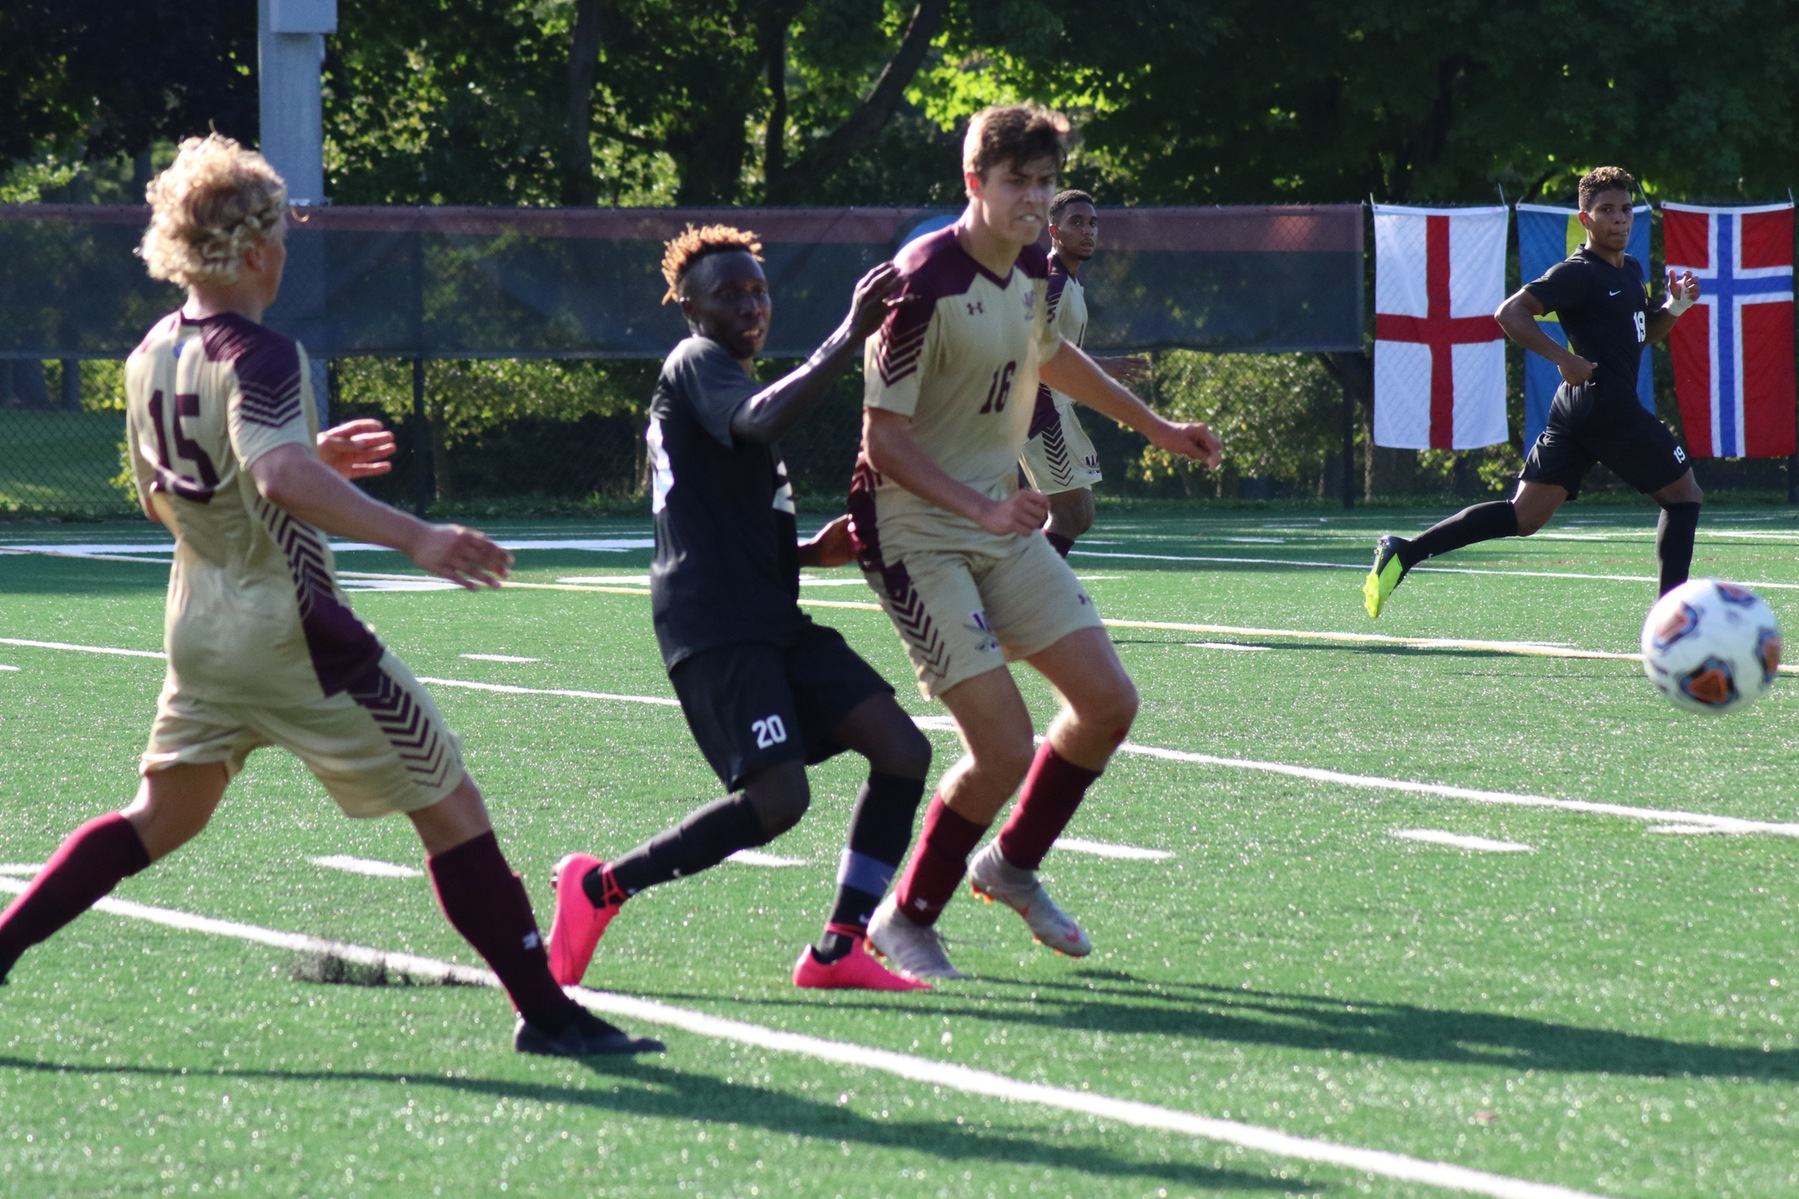 PK's Aid Fast Start In Walsh Win Over Roberts Wesleyan